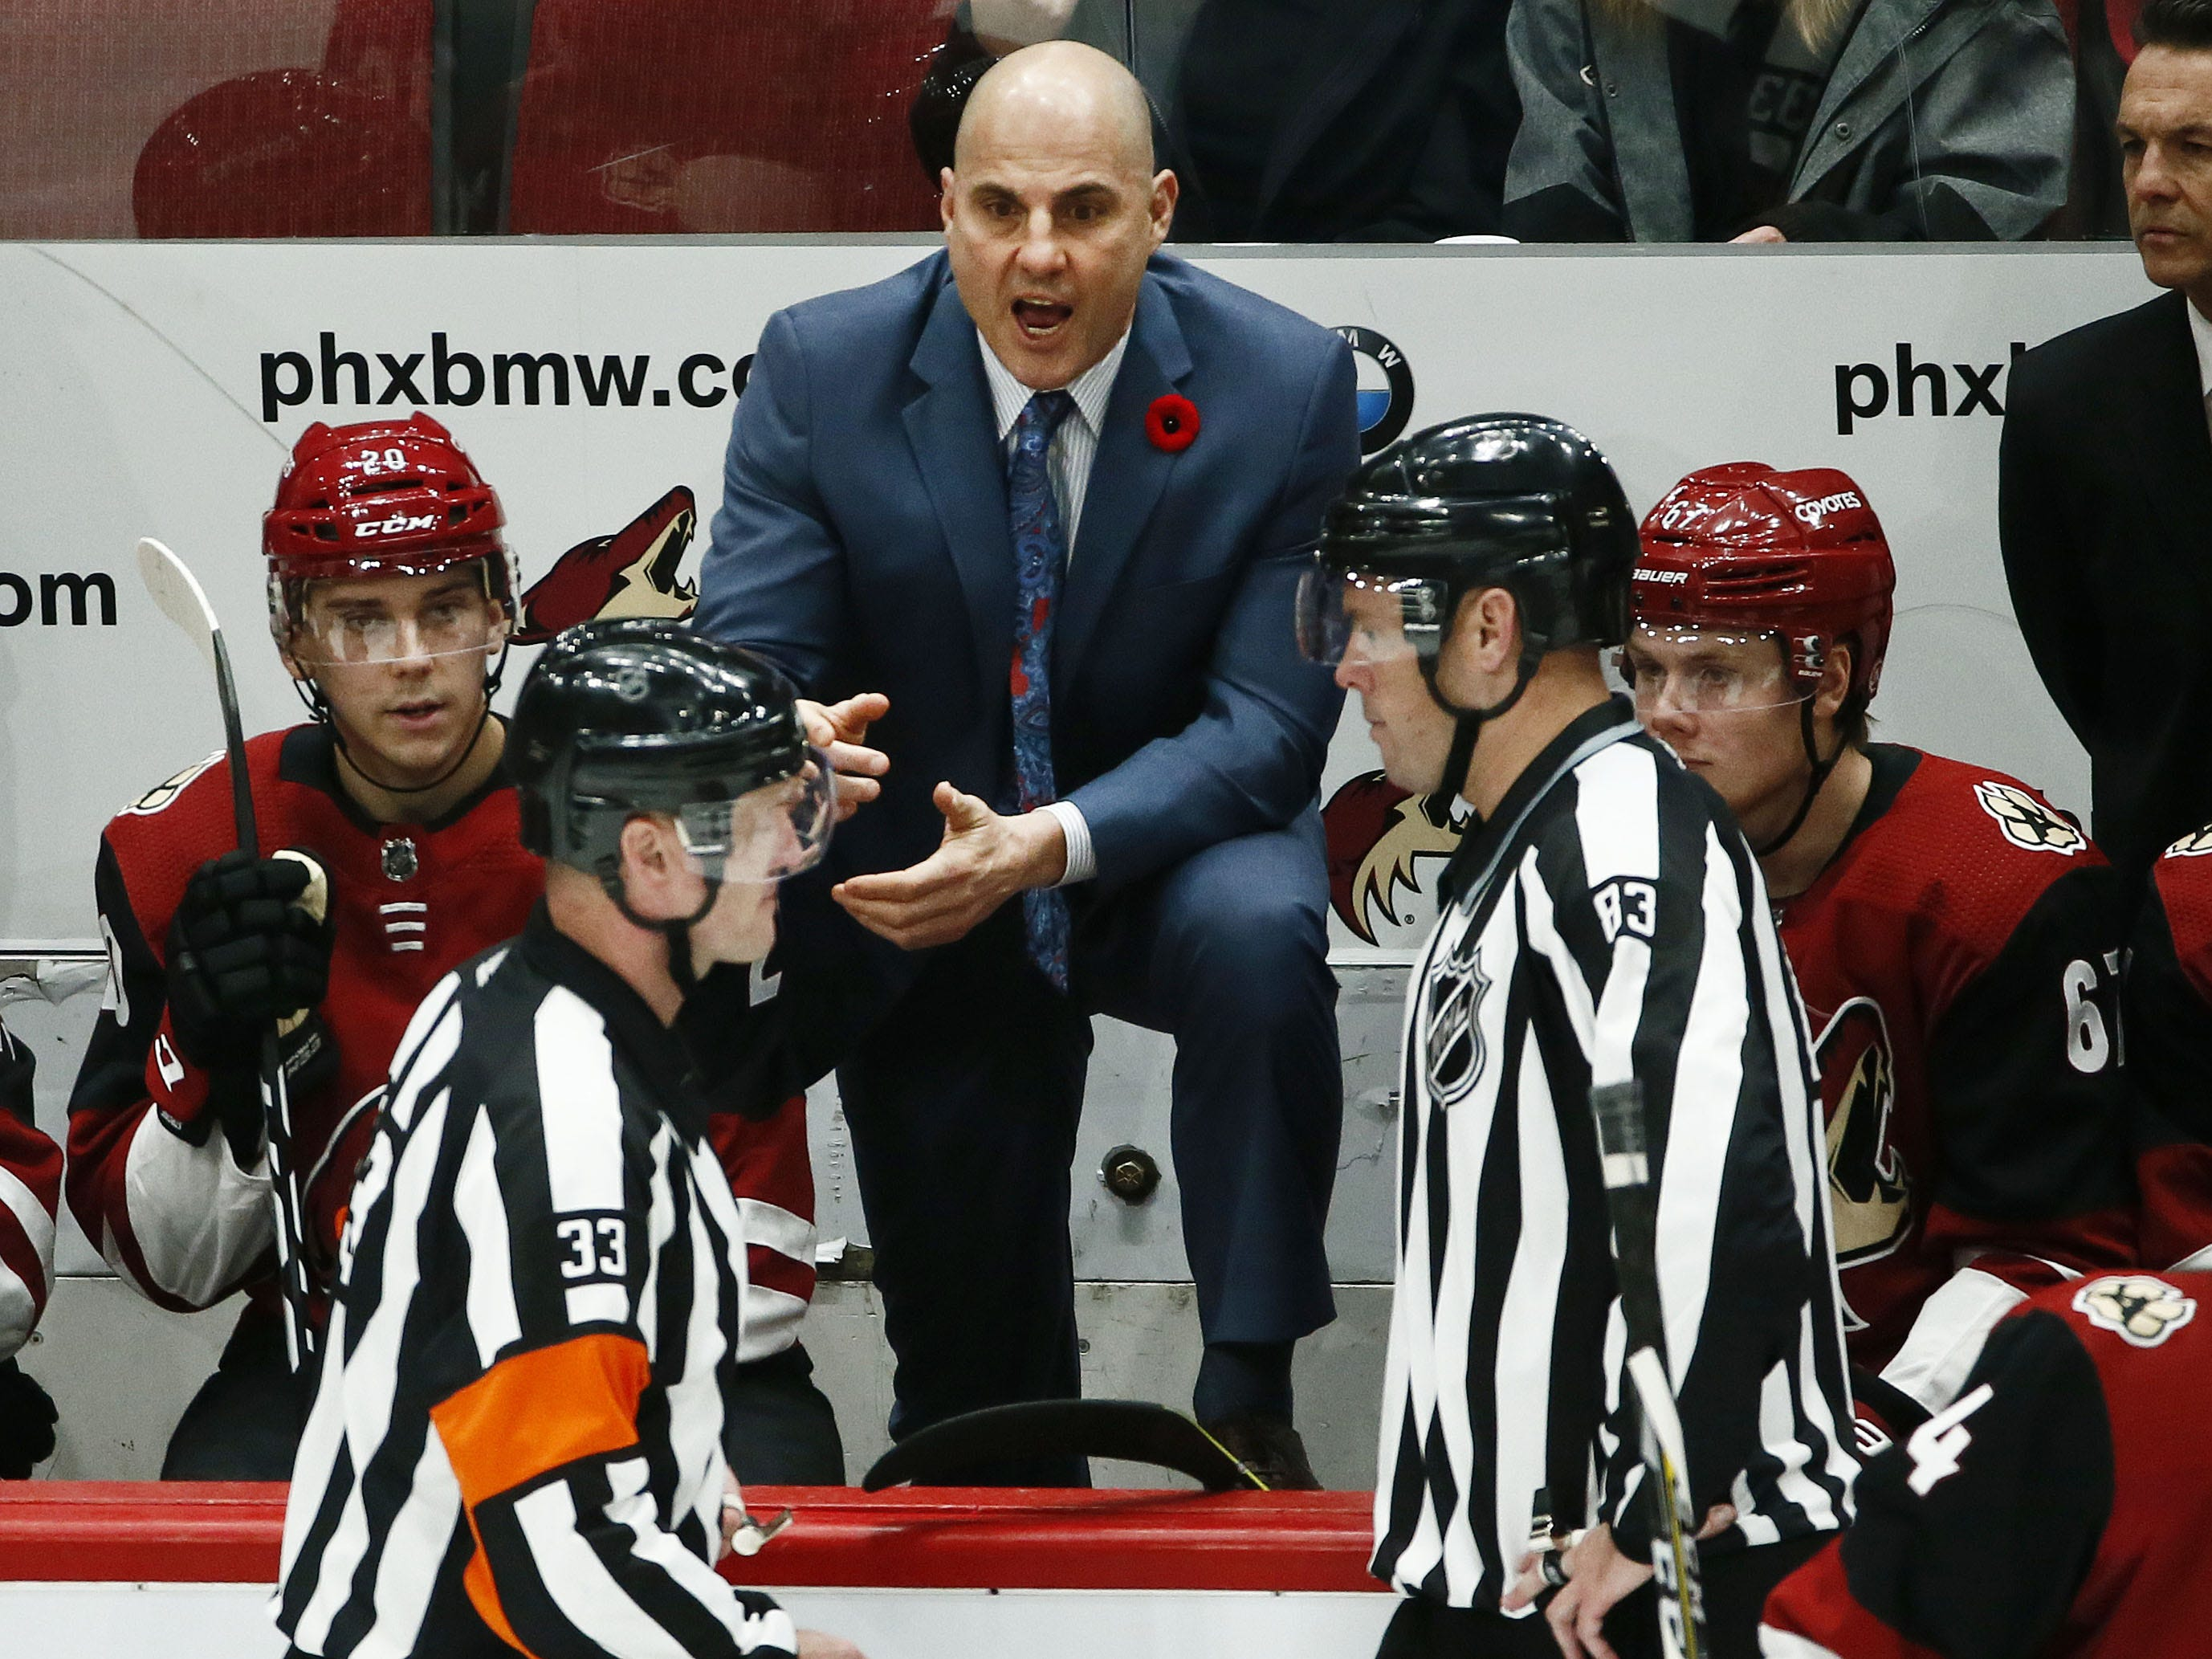 Arizona Coyotes head coach Rick Tocchet calls for a coach's challenge and wins for goal interference against Ottawa Senators in the second period on Oct. 30, 2018 at Gila River Arena.